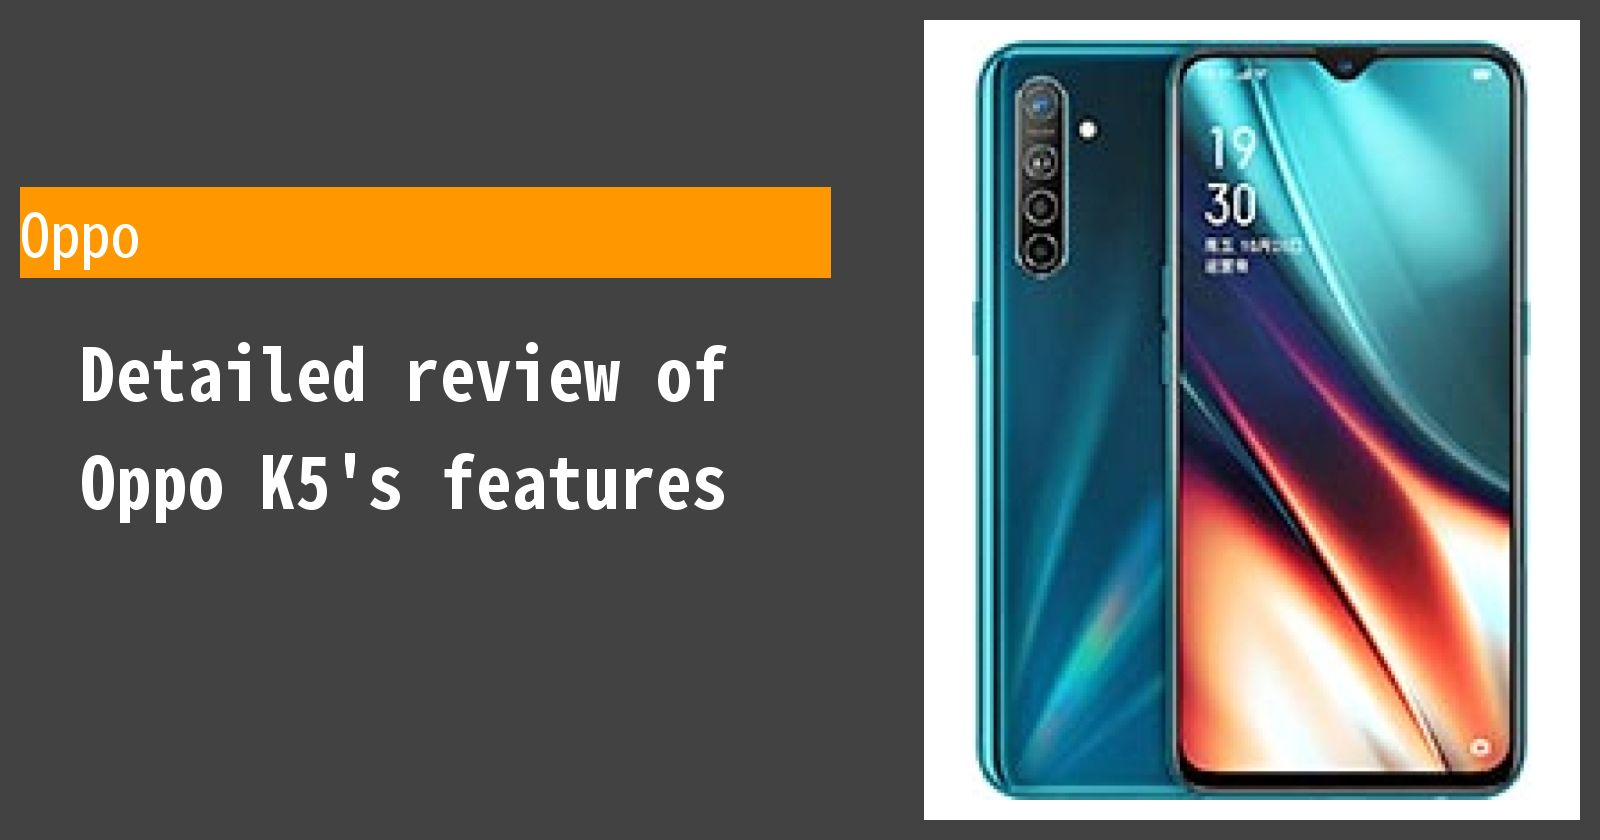 Detailed review of Oppo K5's features